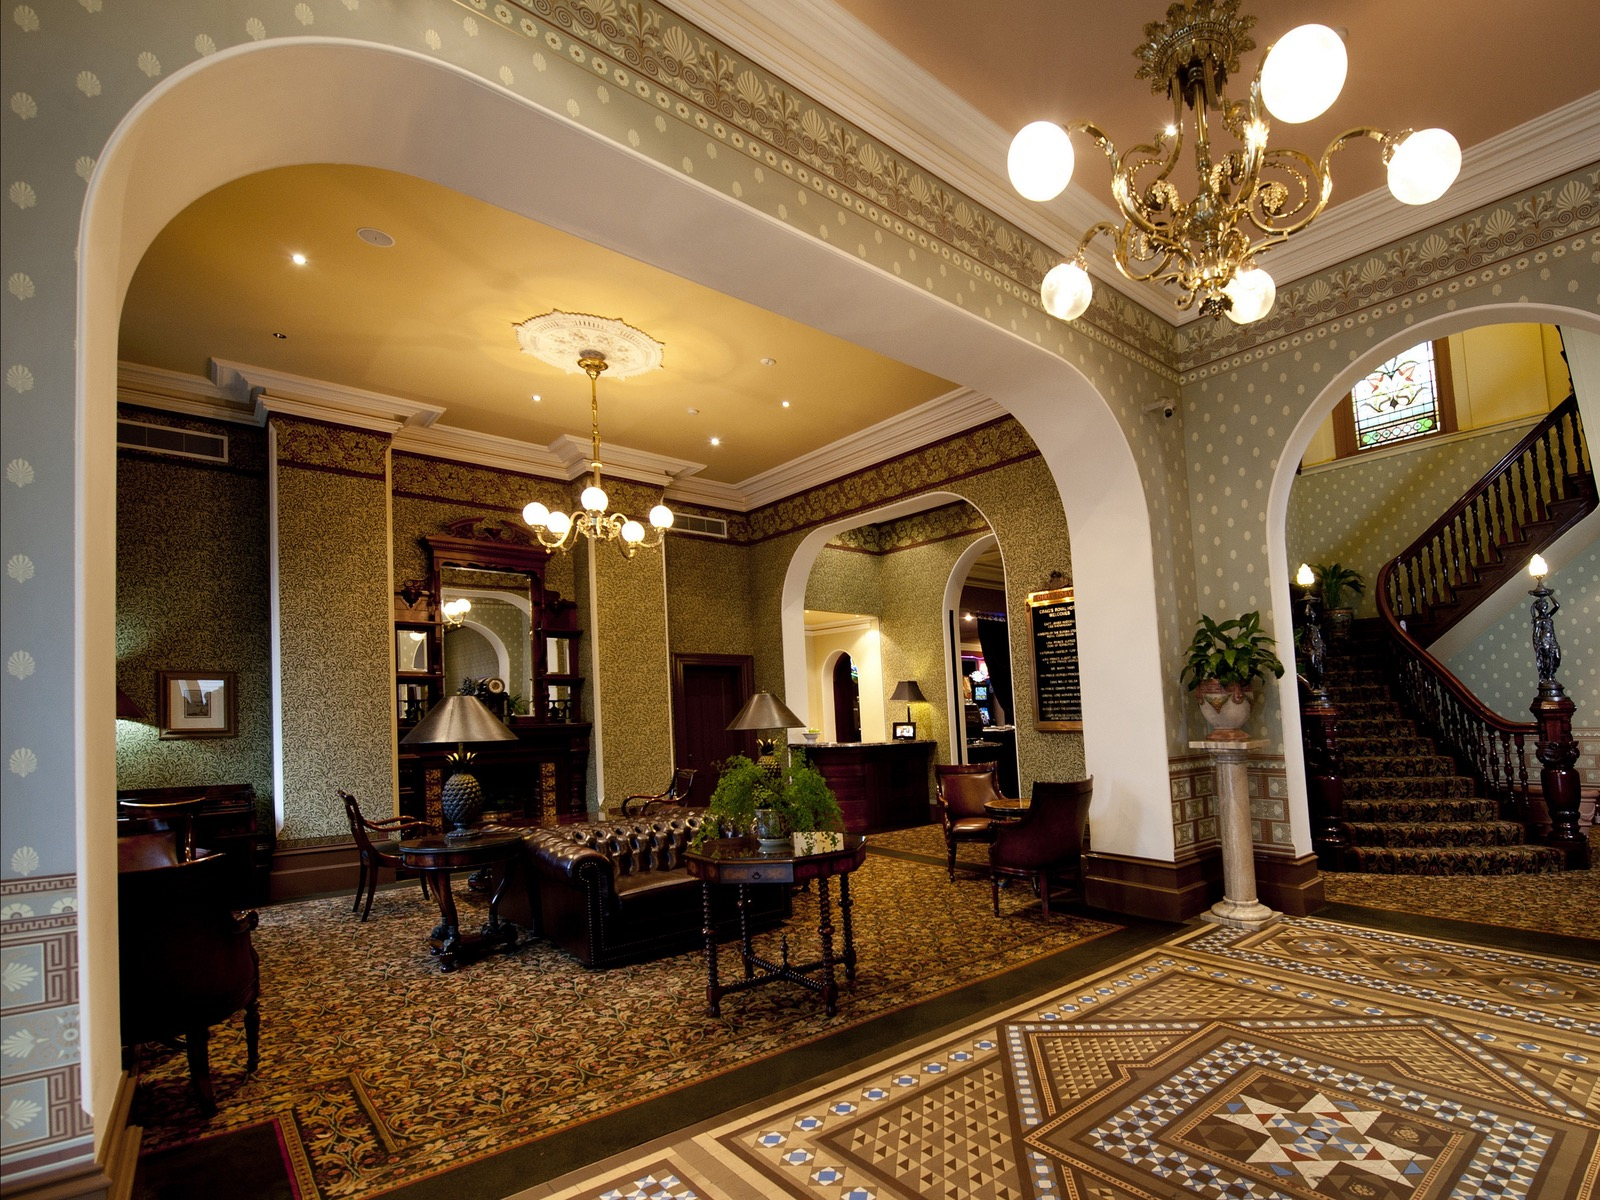 The lobby entrance at Craig's Royal Hotel